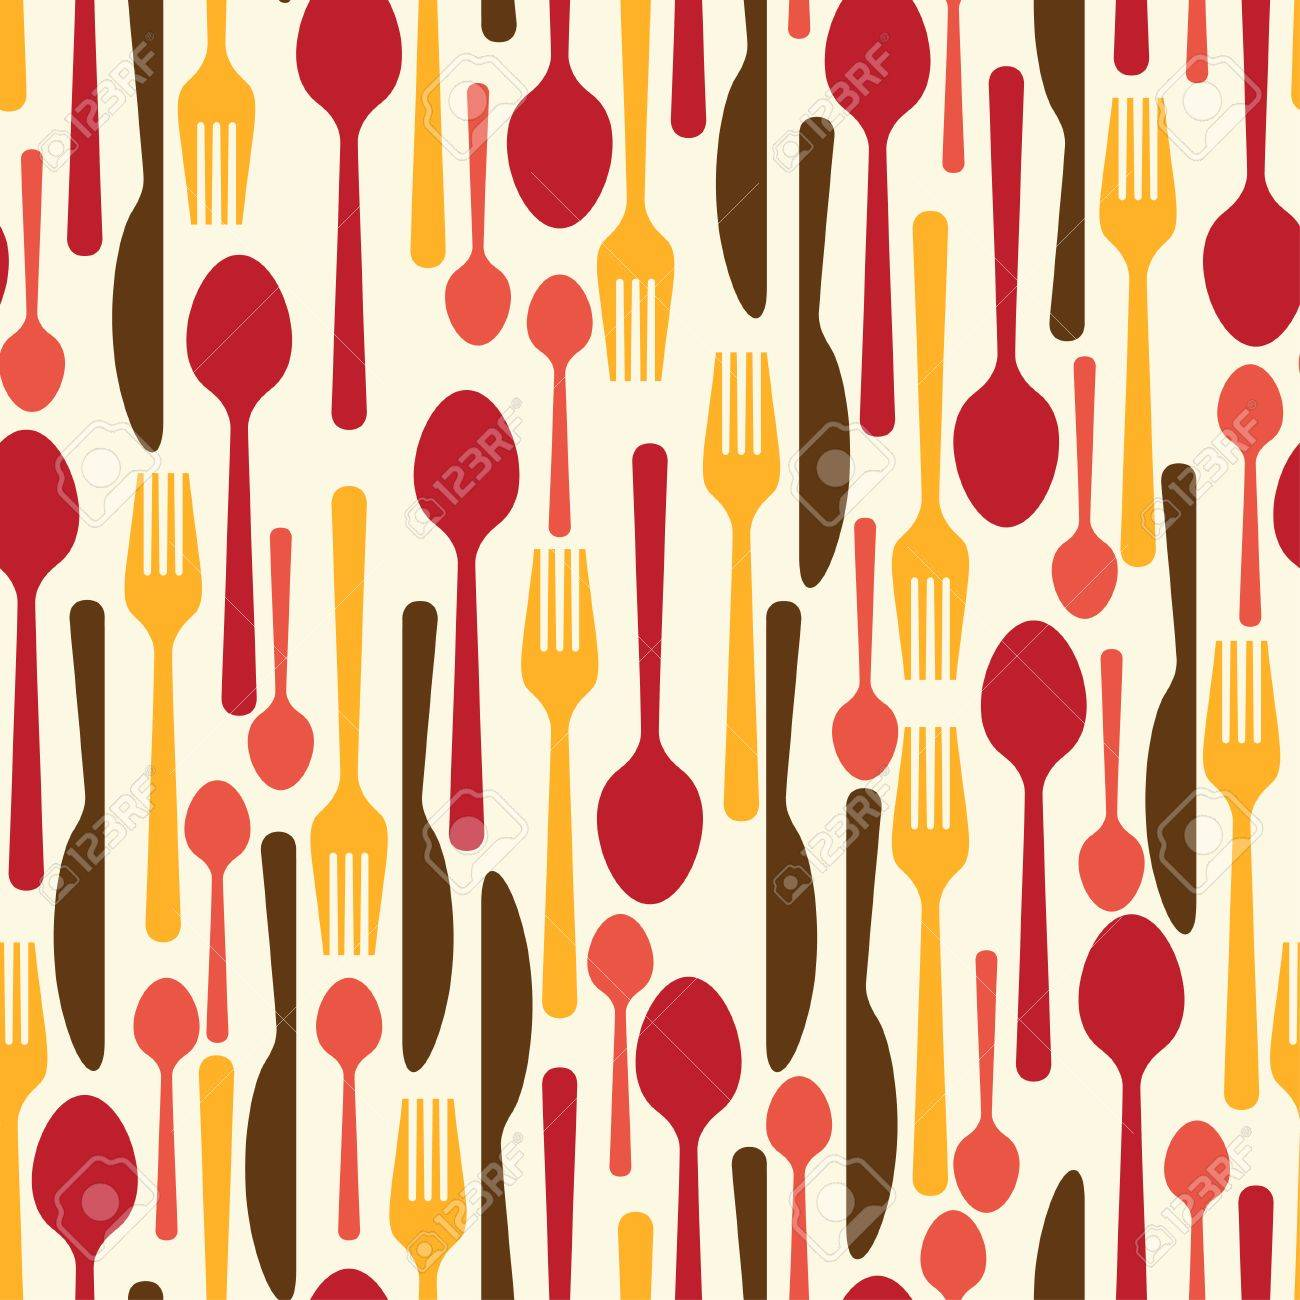 Restaurant Kitchen Utensils seamless pattern with restaurant and kitchen utensils royalty free